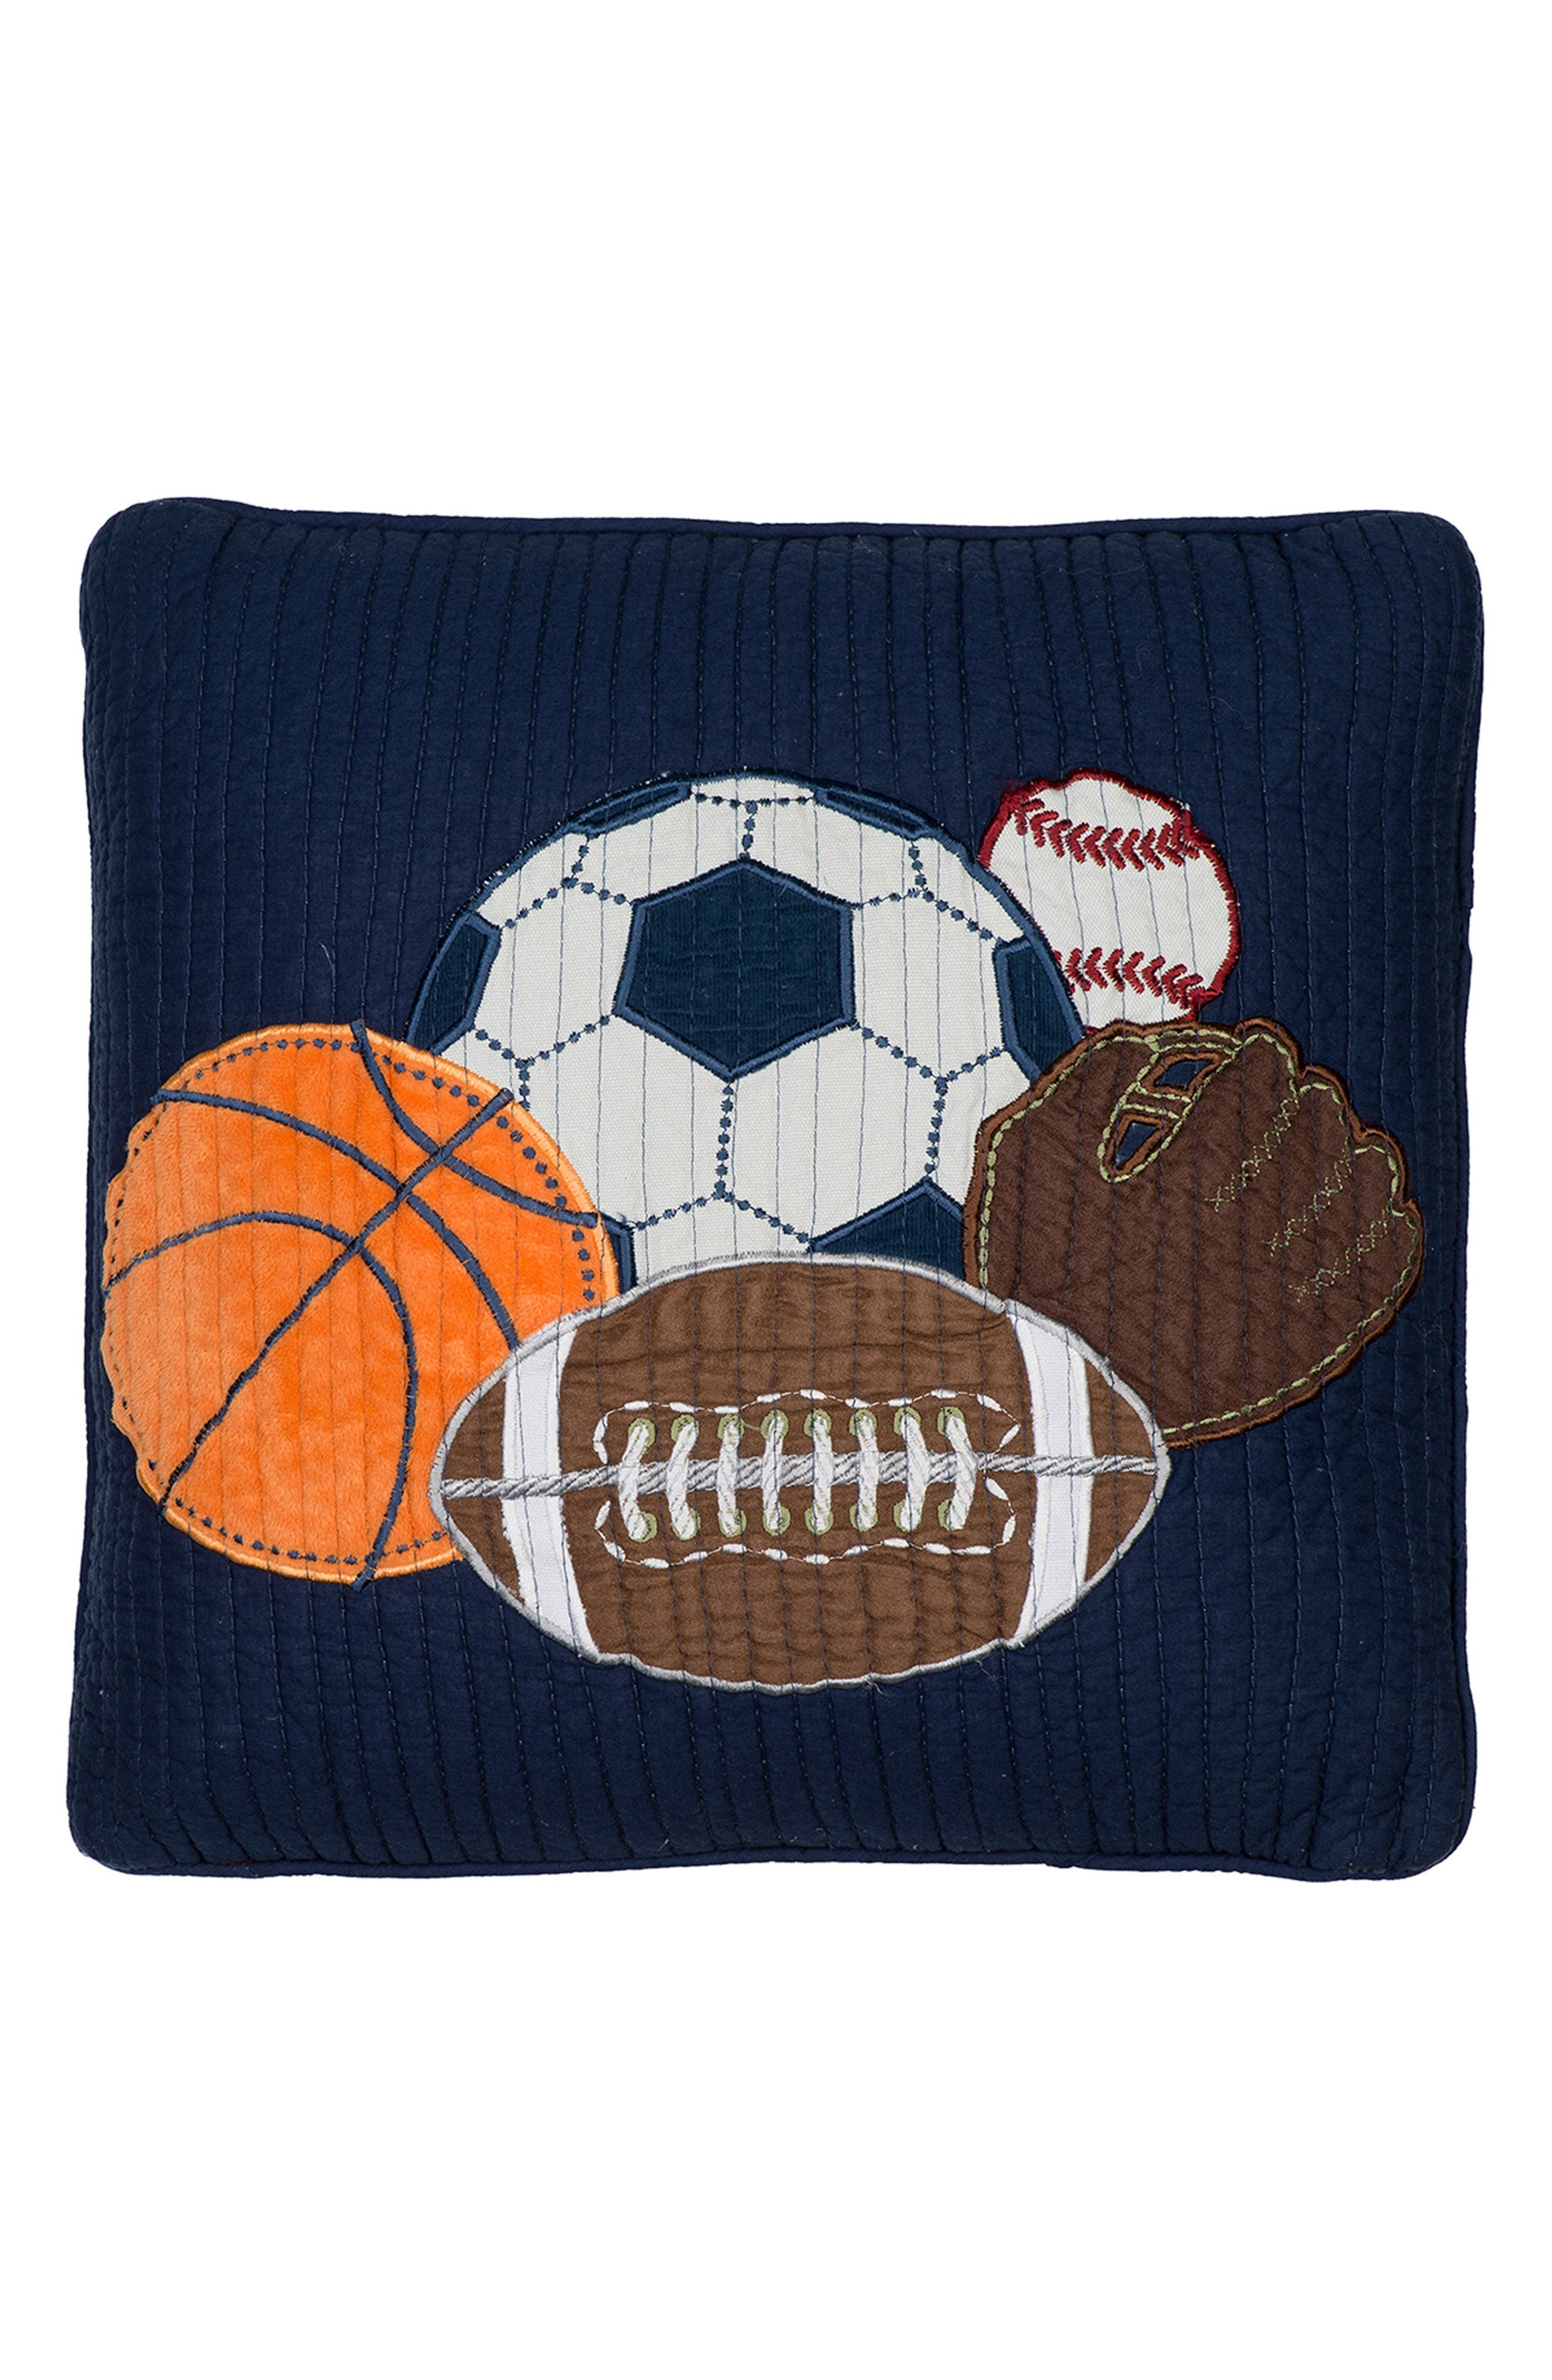 Alternate Image 1 Selected - Levtex Ivan Sports Accent Pillow